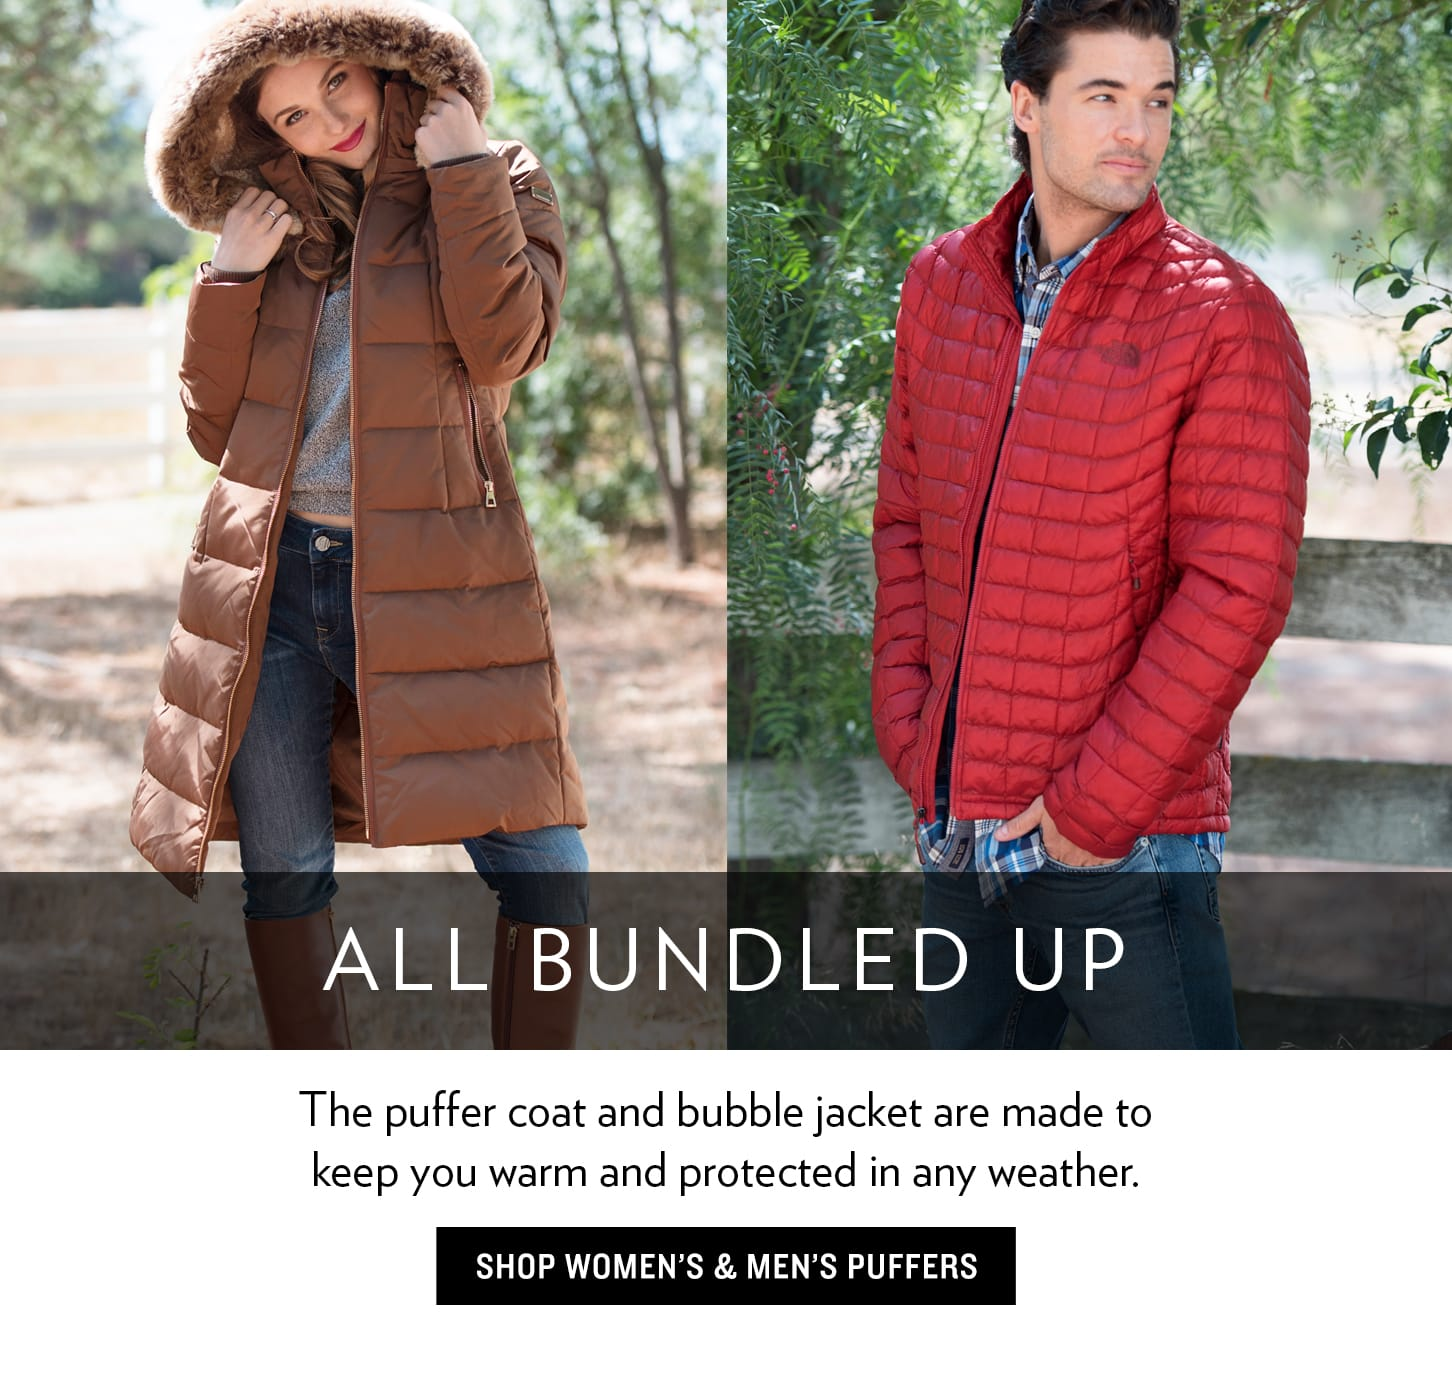 Puffer And Bubble Jackets And Coats For Men And Women